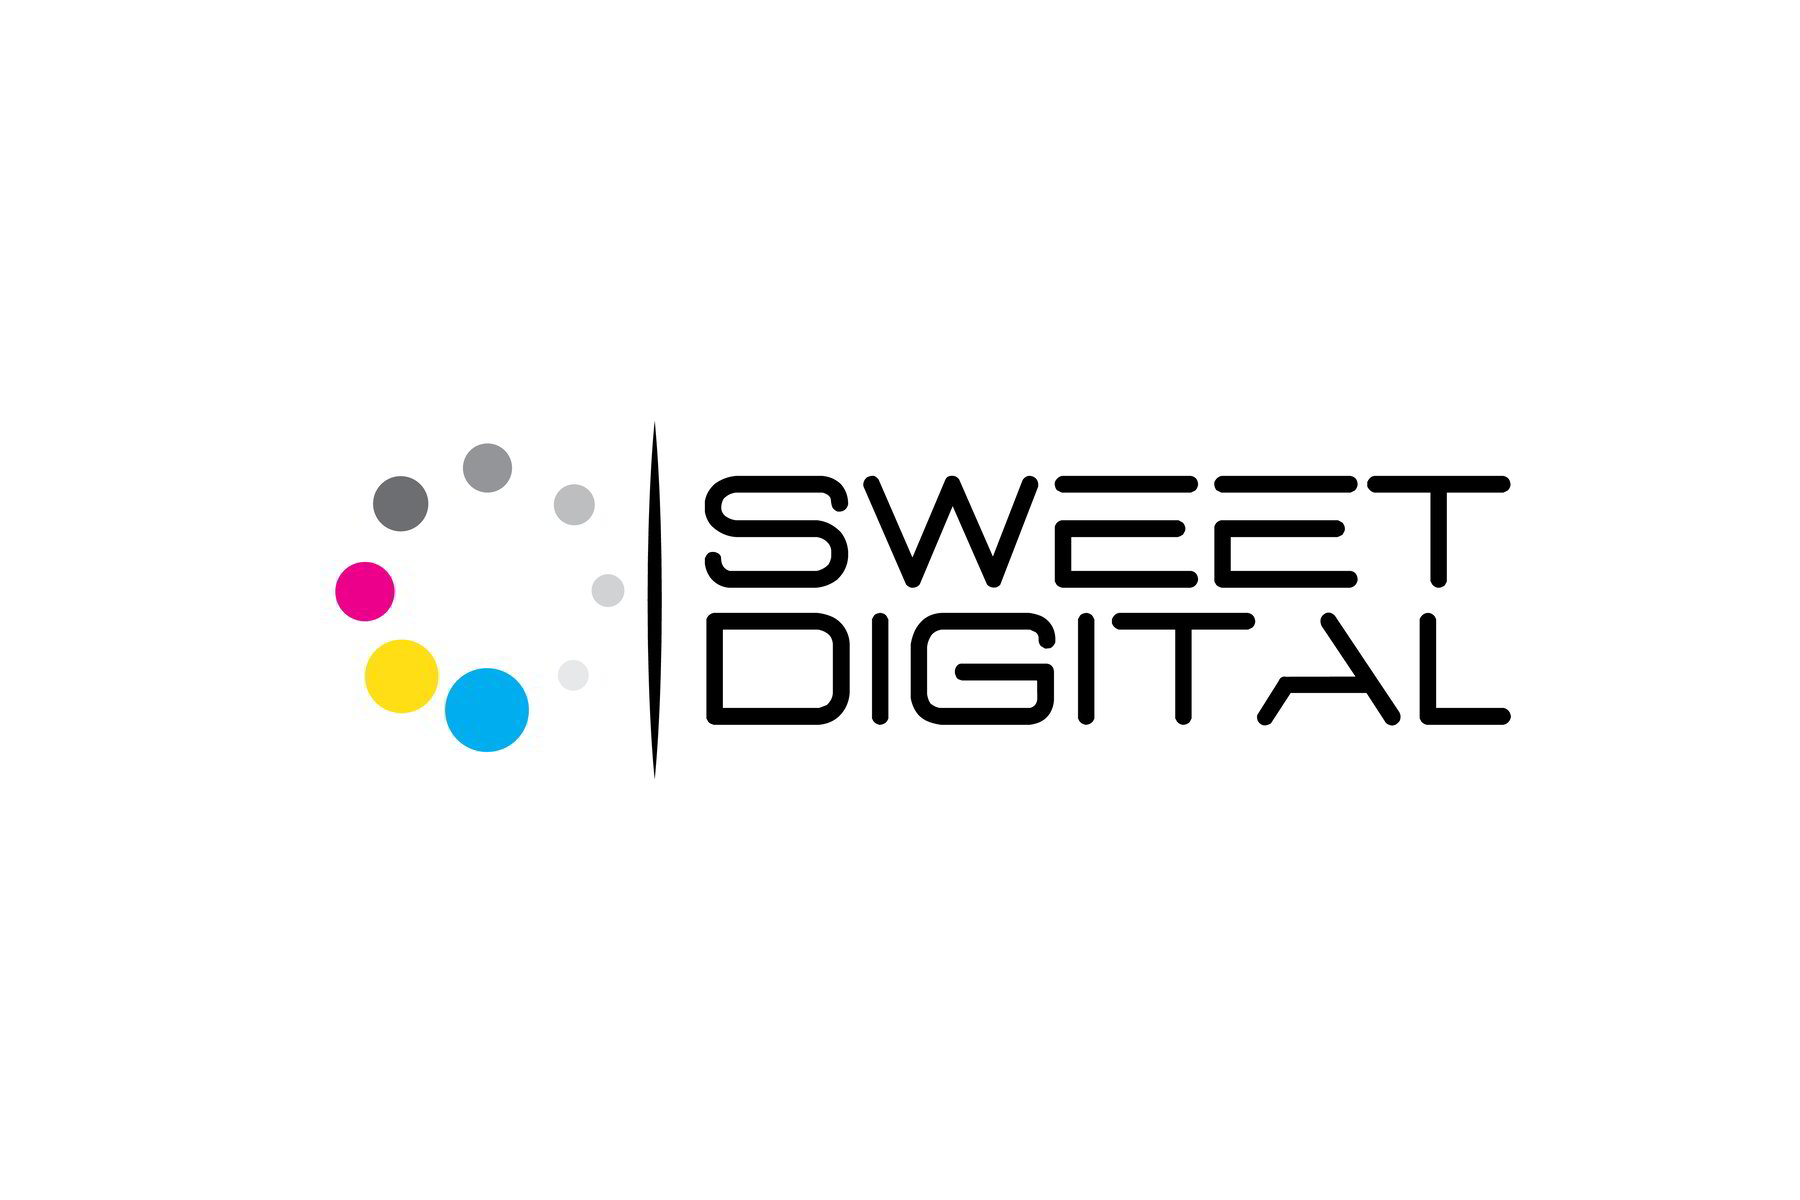 Sweet Digital